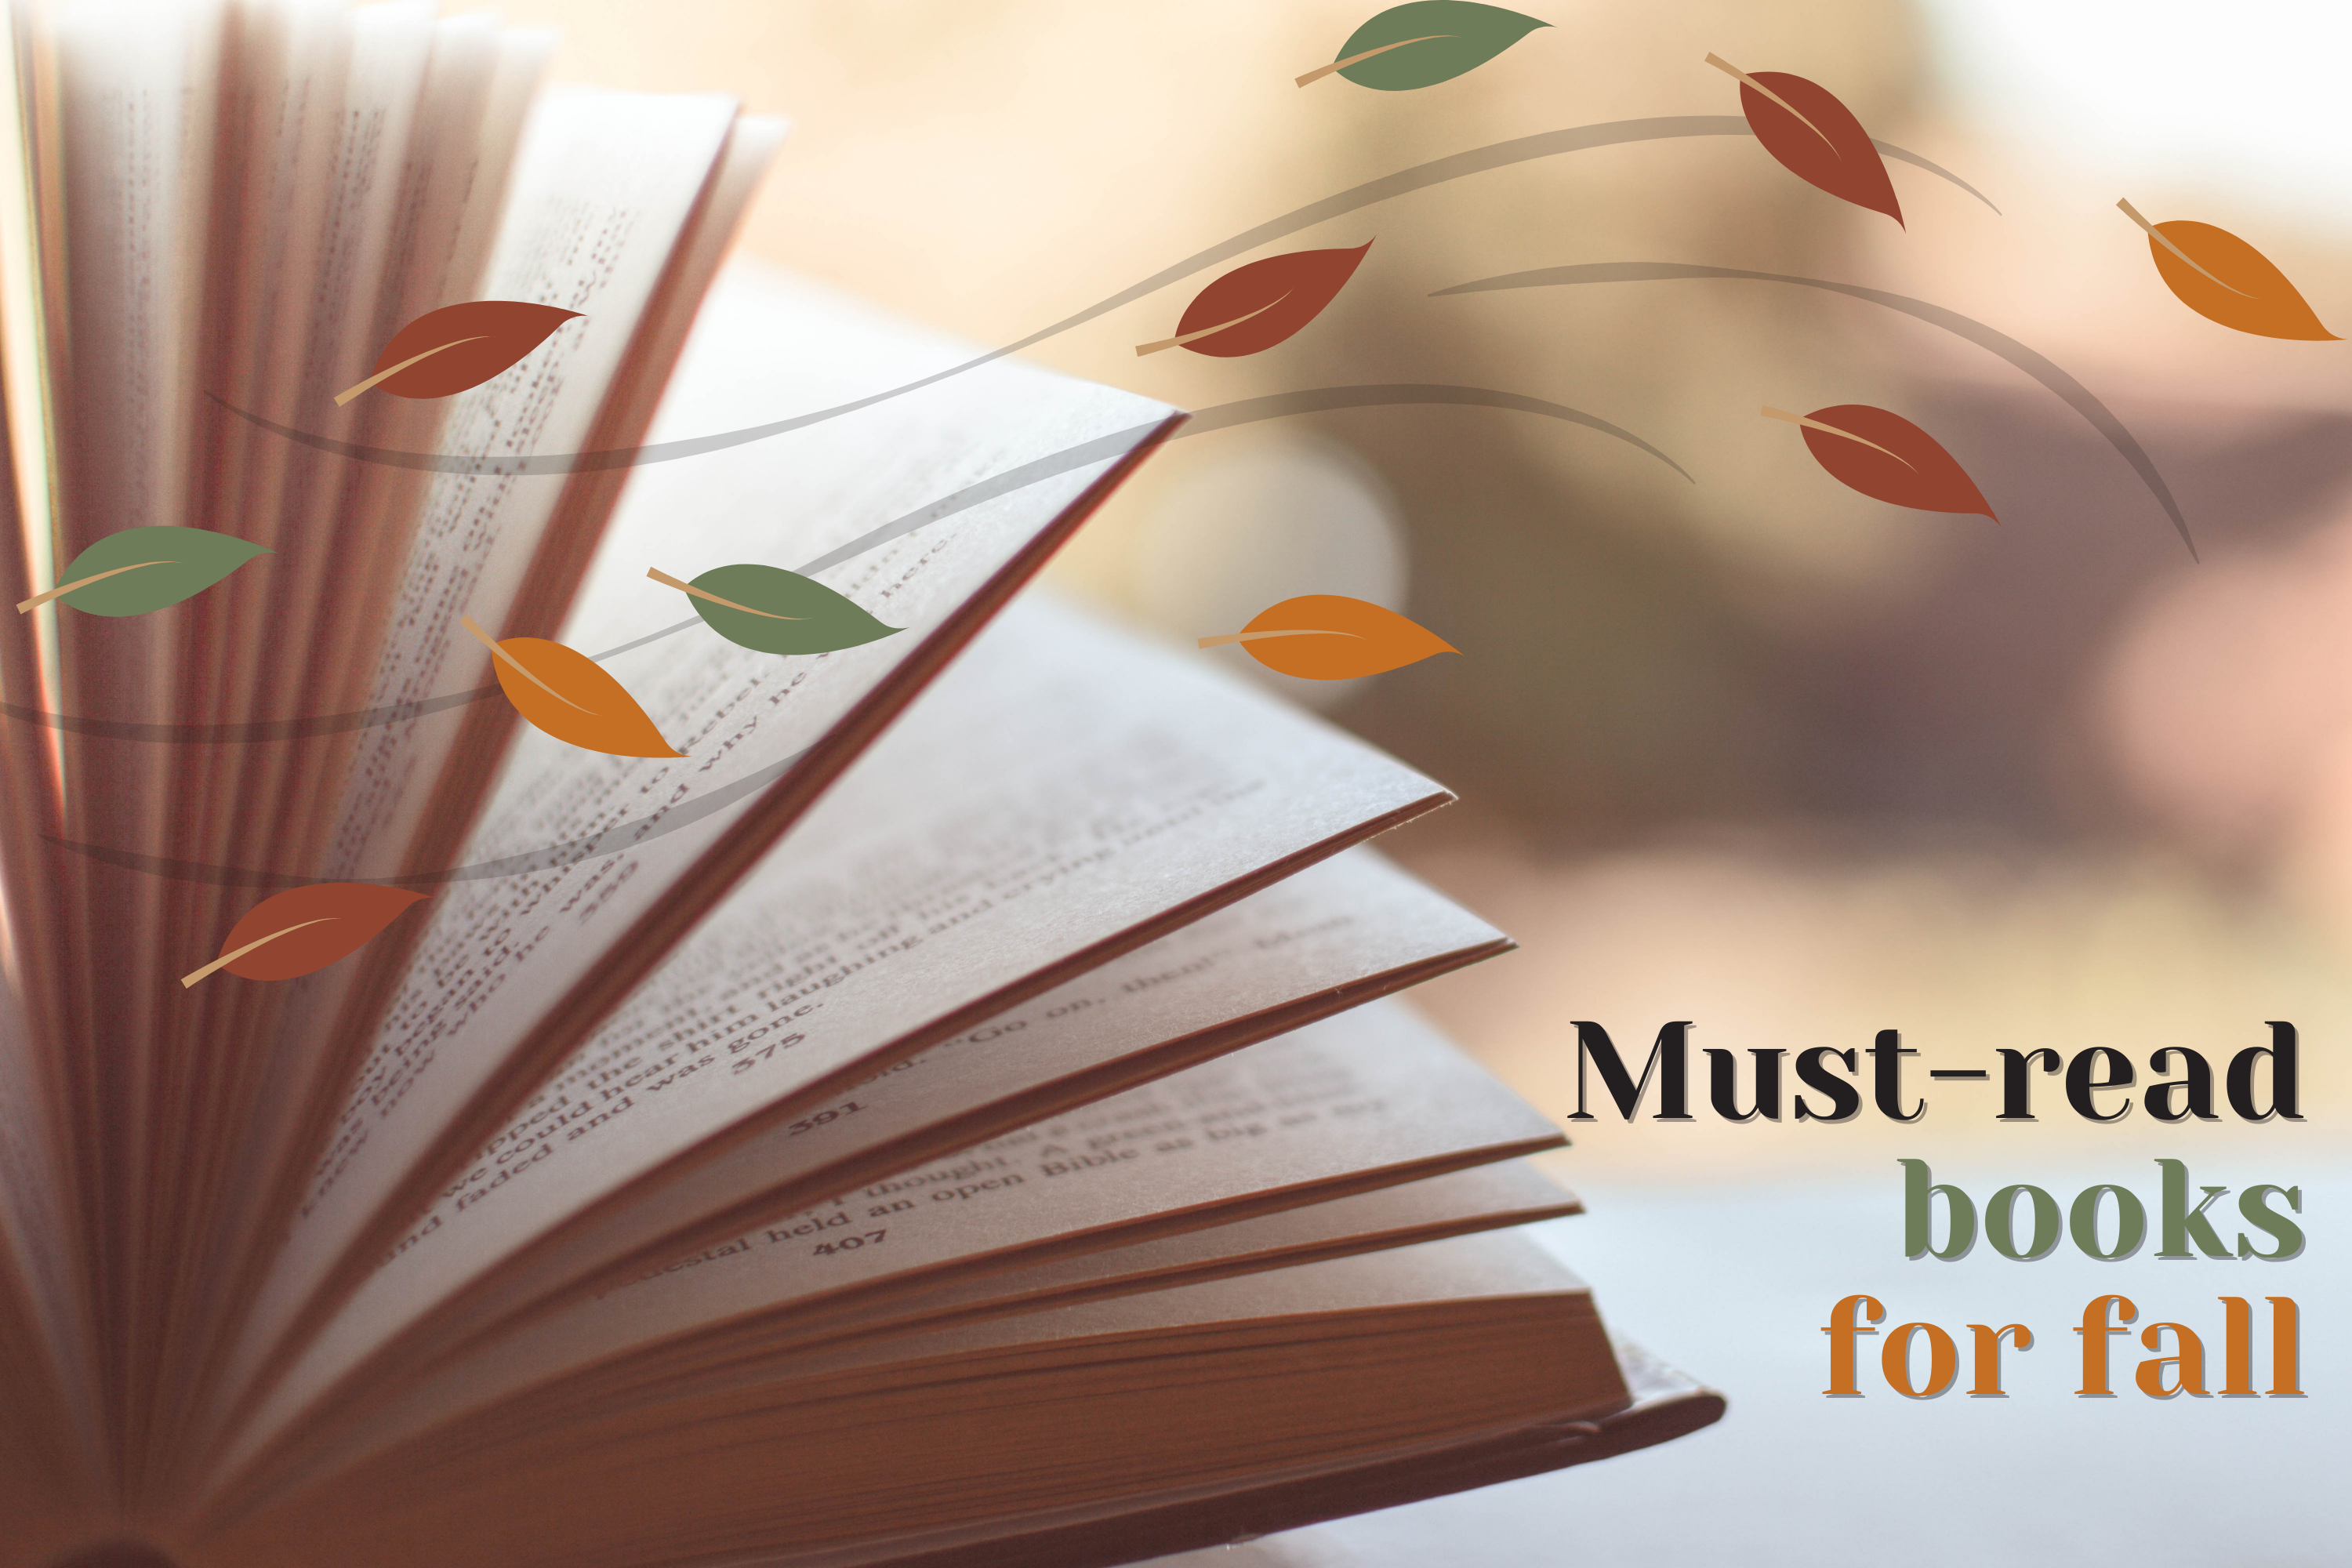 Must-red books for fall 2020